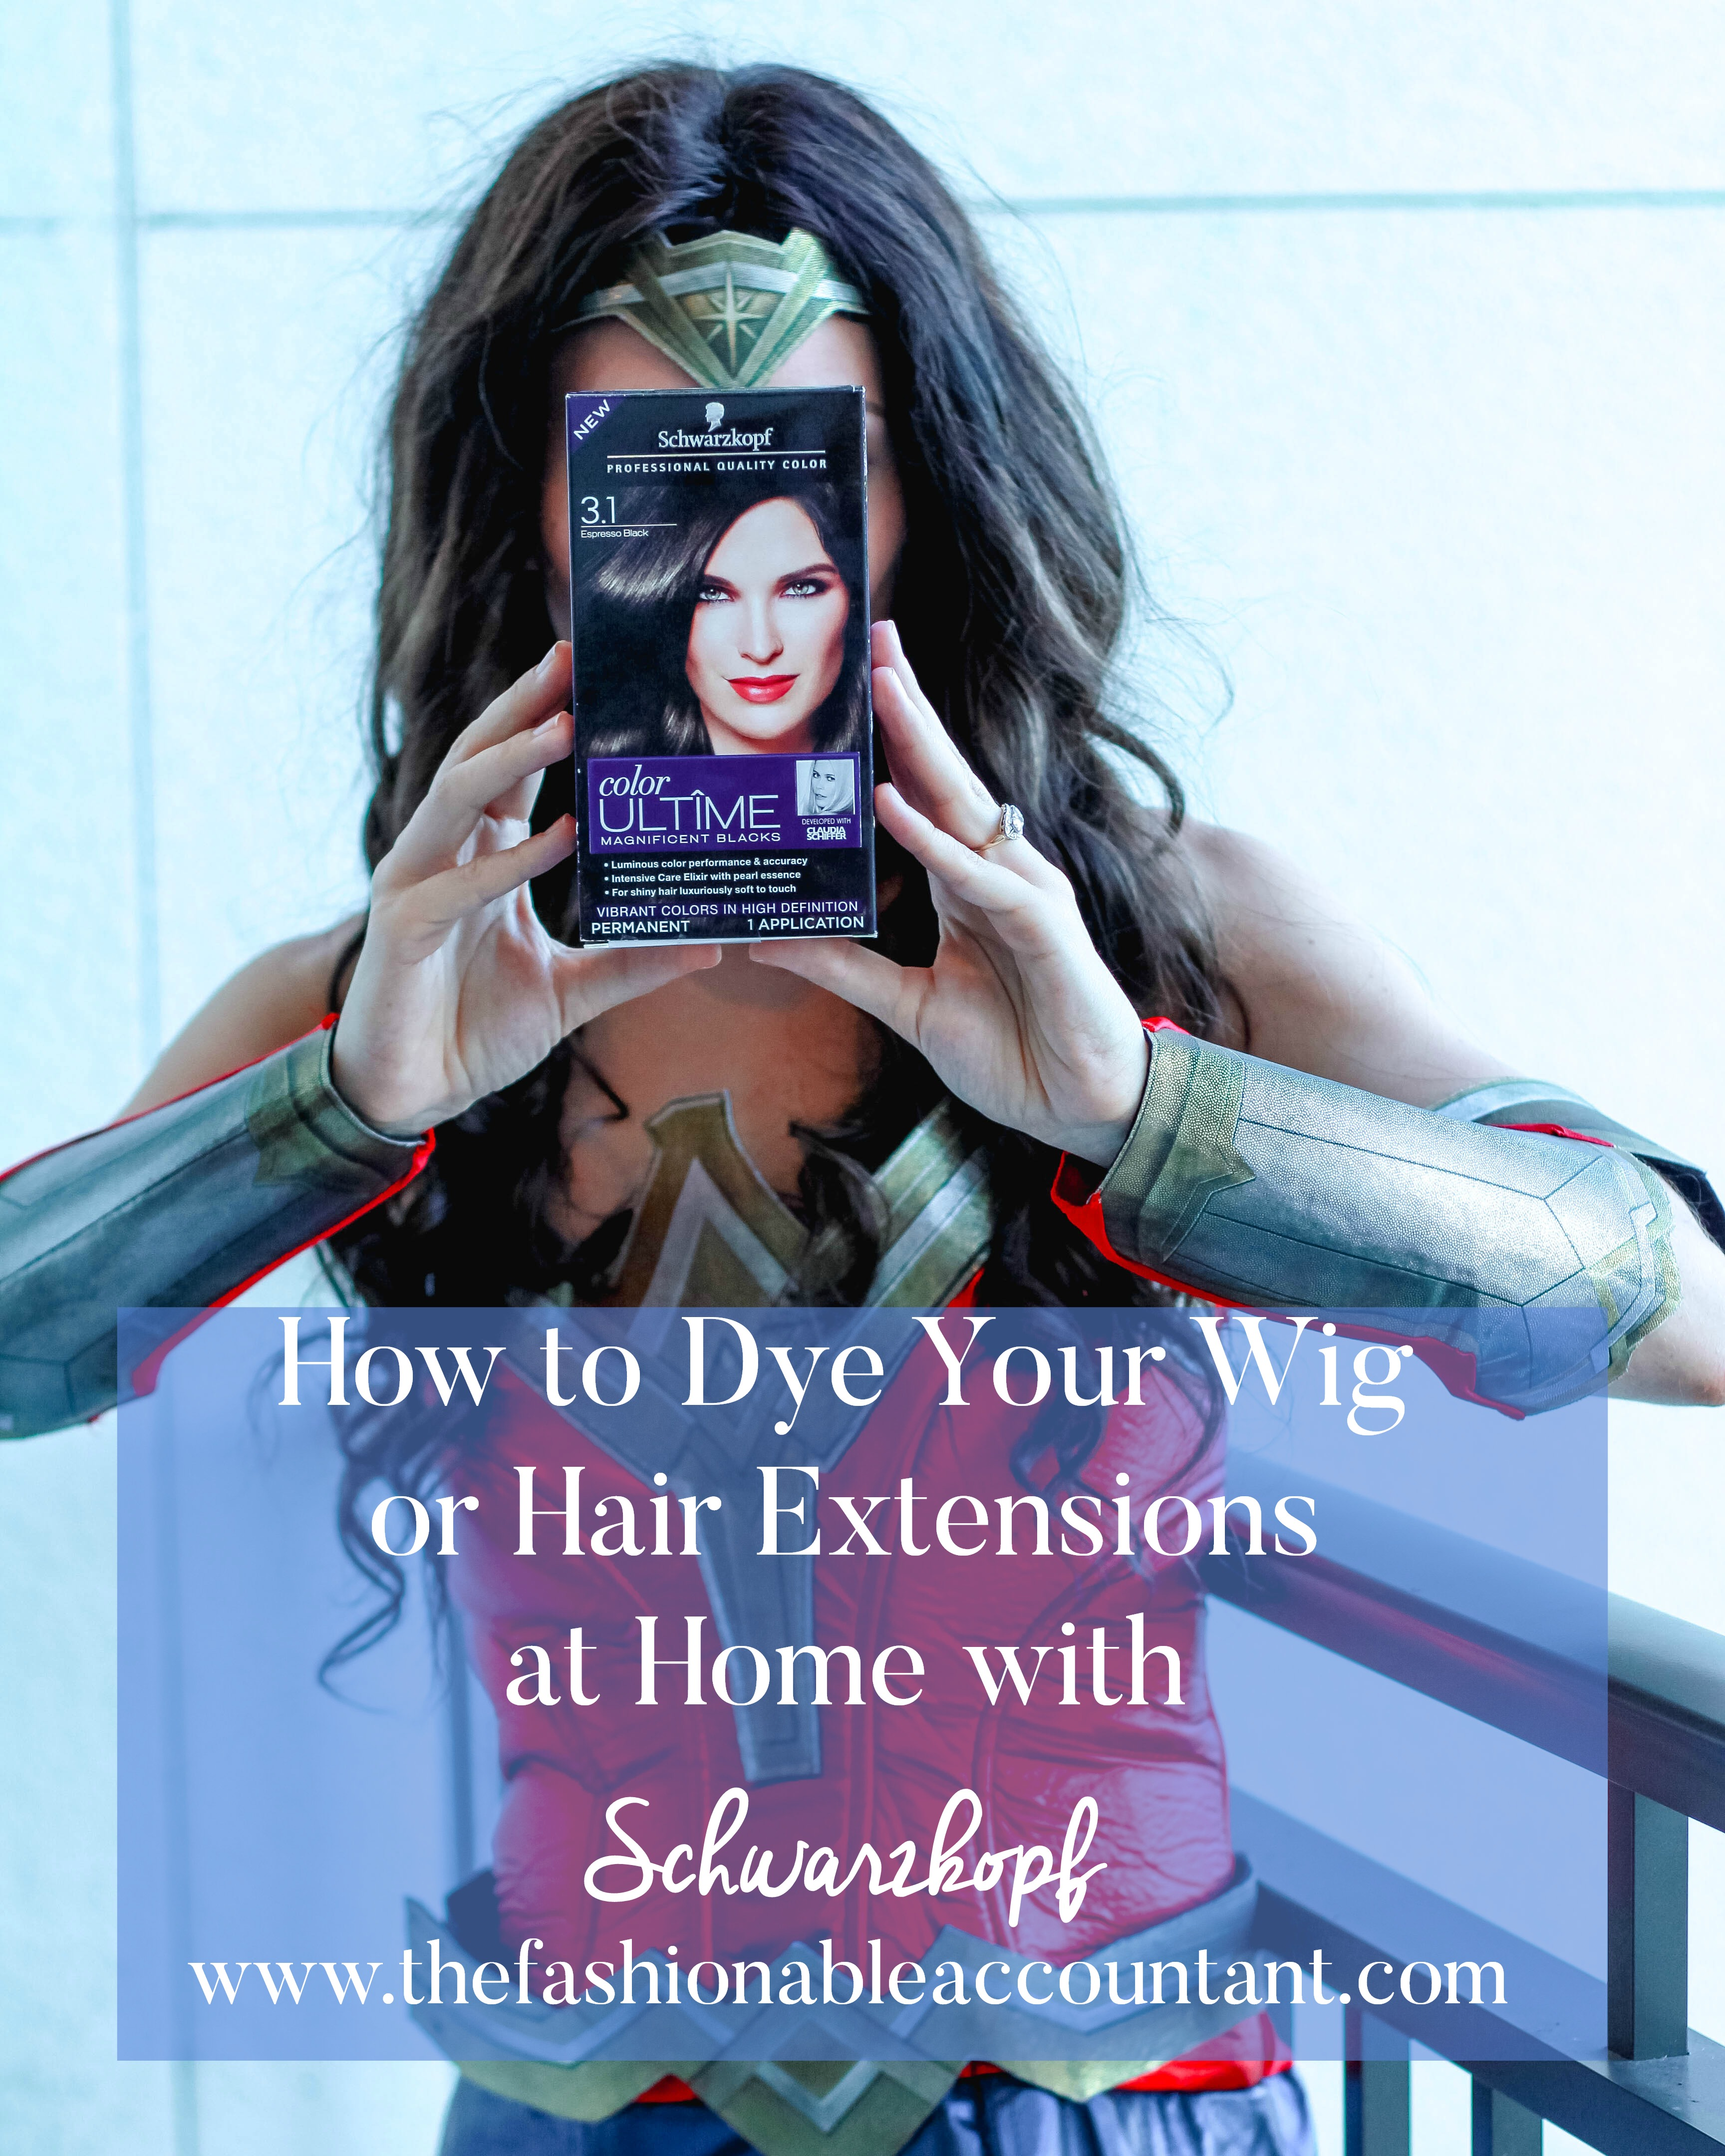 DYE YOUR WIG AND HAIR EXTENSIONS AT HOME